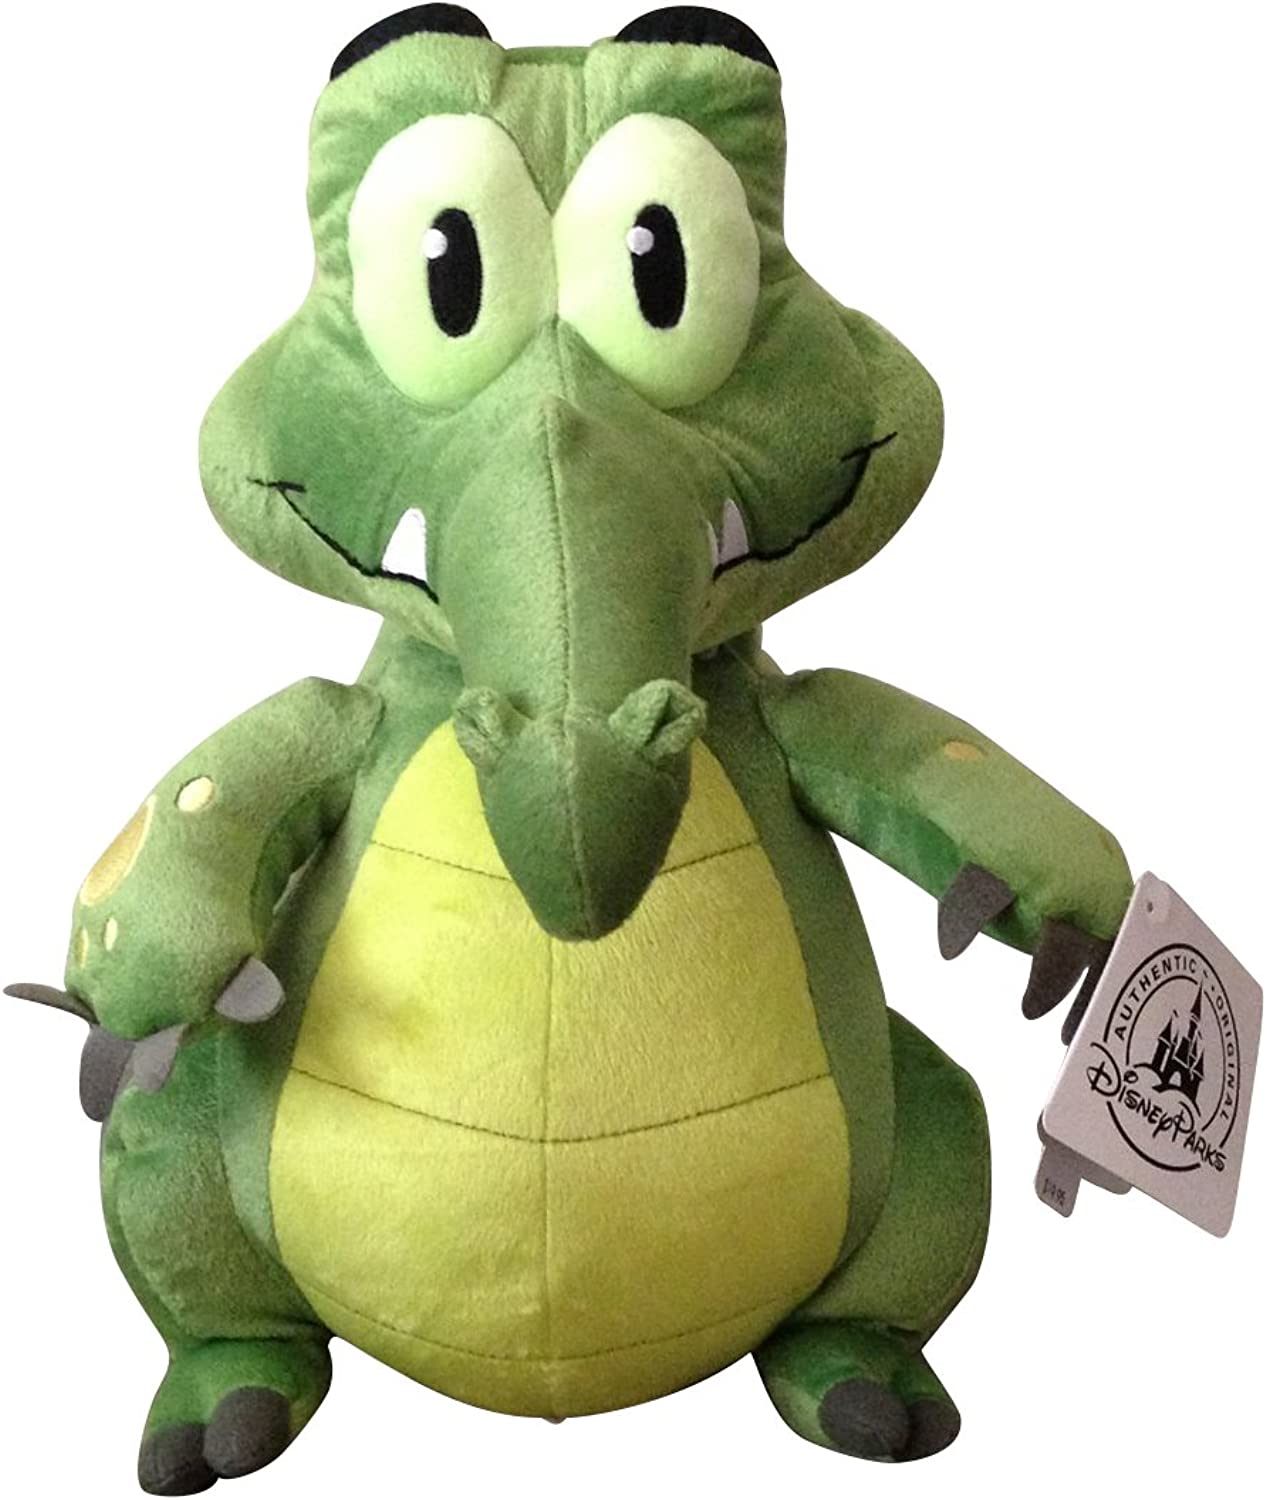 Disney Park Where's My Water Swampy the Alligator 12 Inch Plush Doll by Disney